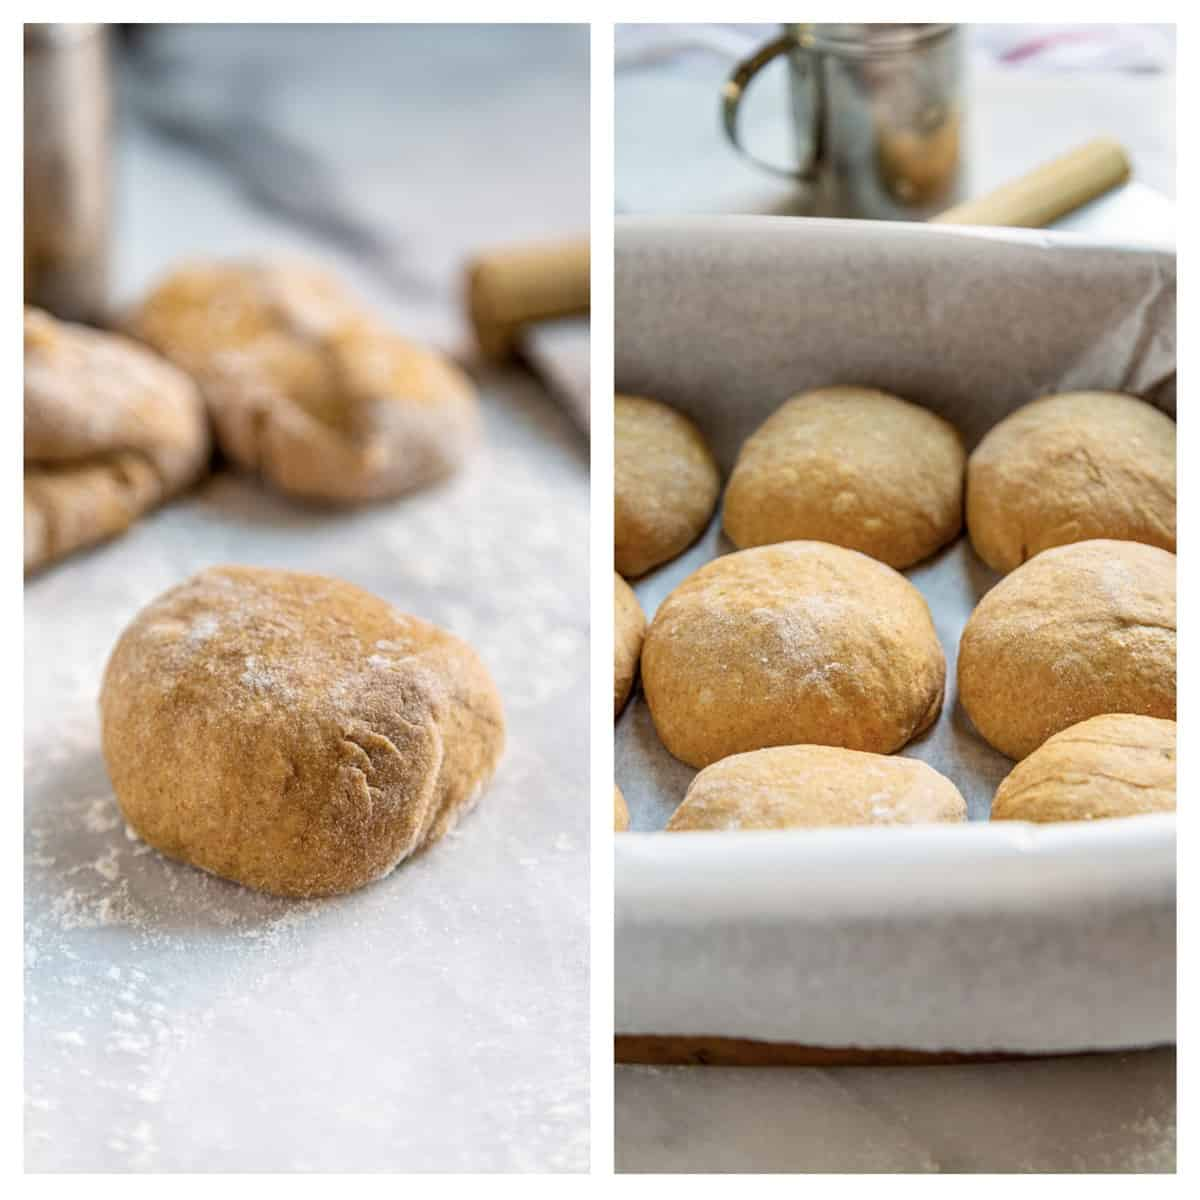 side by side photos: homemade yeast dinner rolls before and after baking